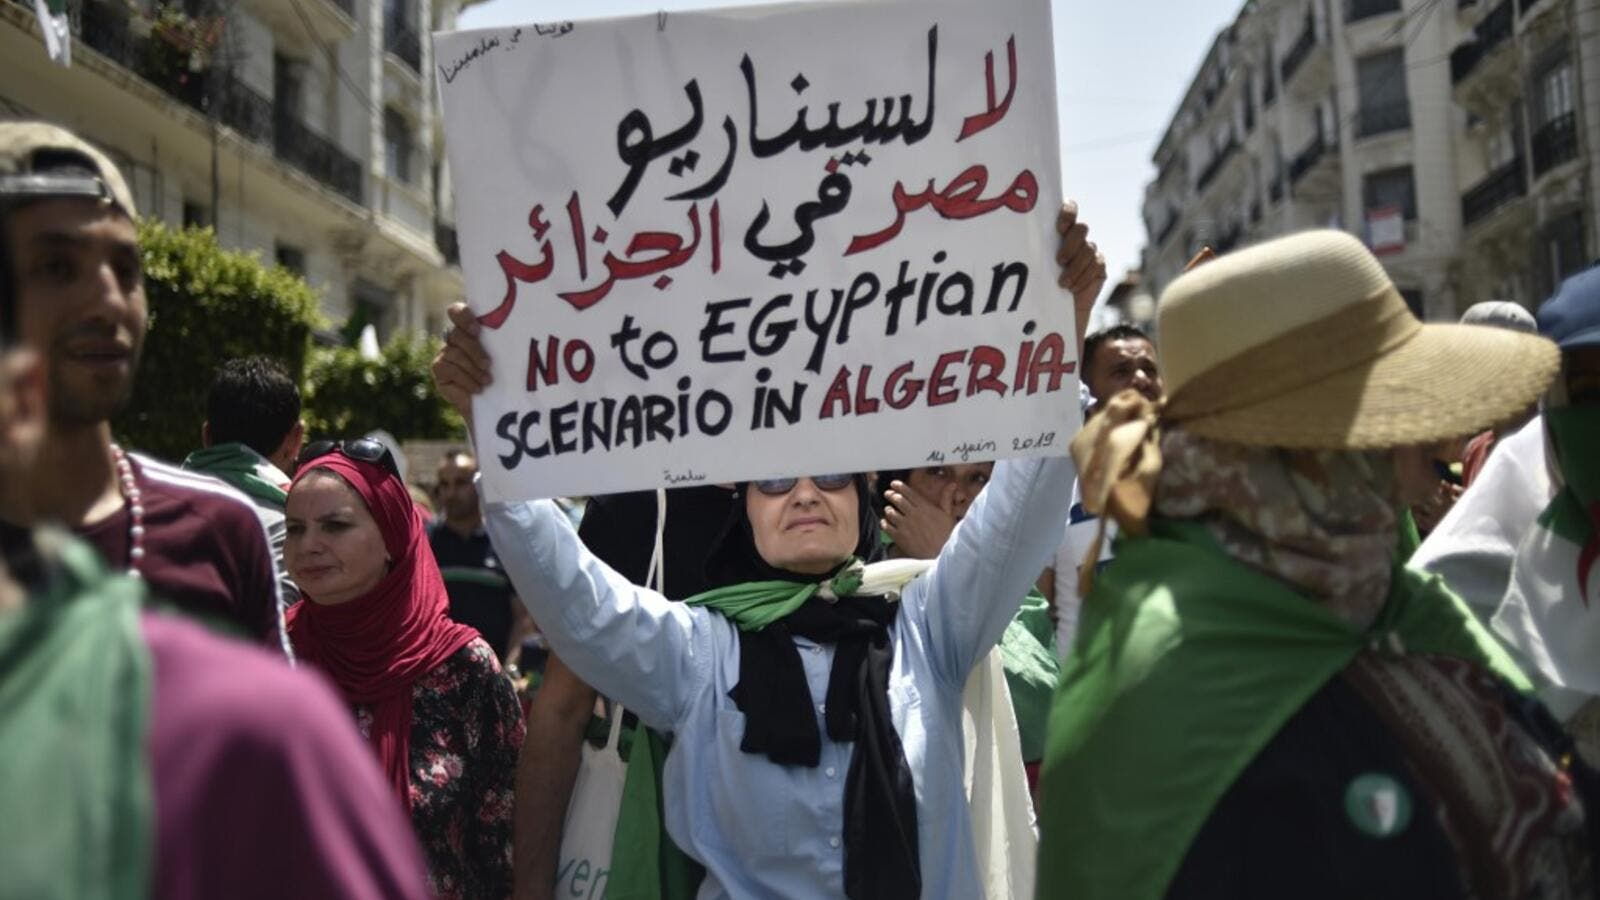 An Algerian woman raises a placard as she takes part in a weekly demonstration in the capital Algiers on June 14, 2019. (AFP/ File Photo)